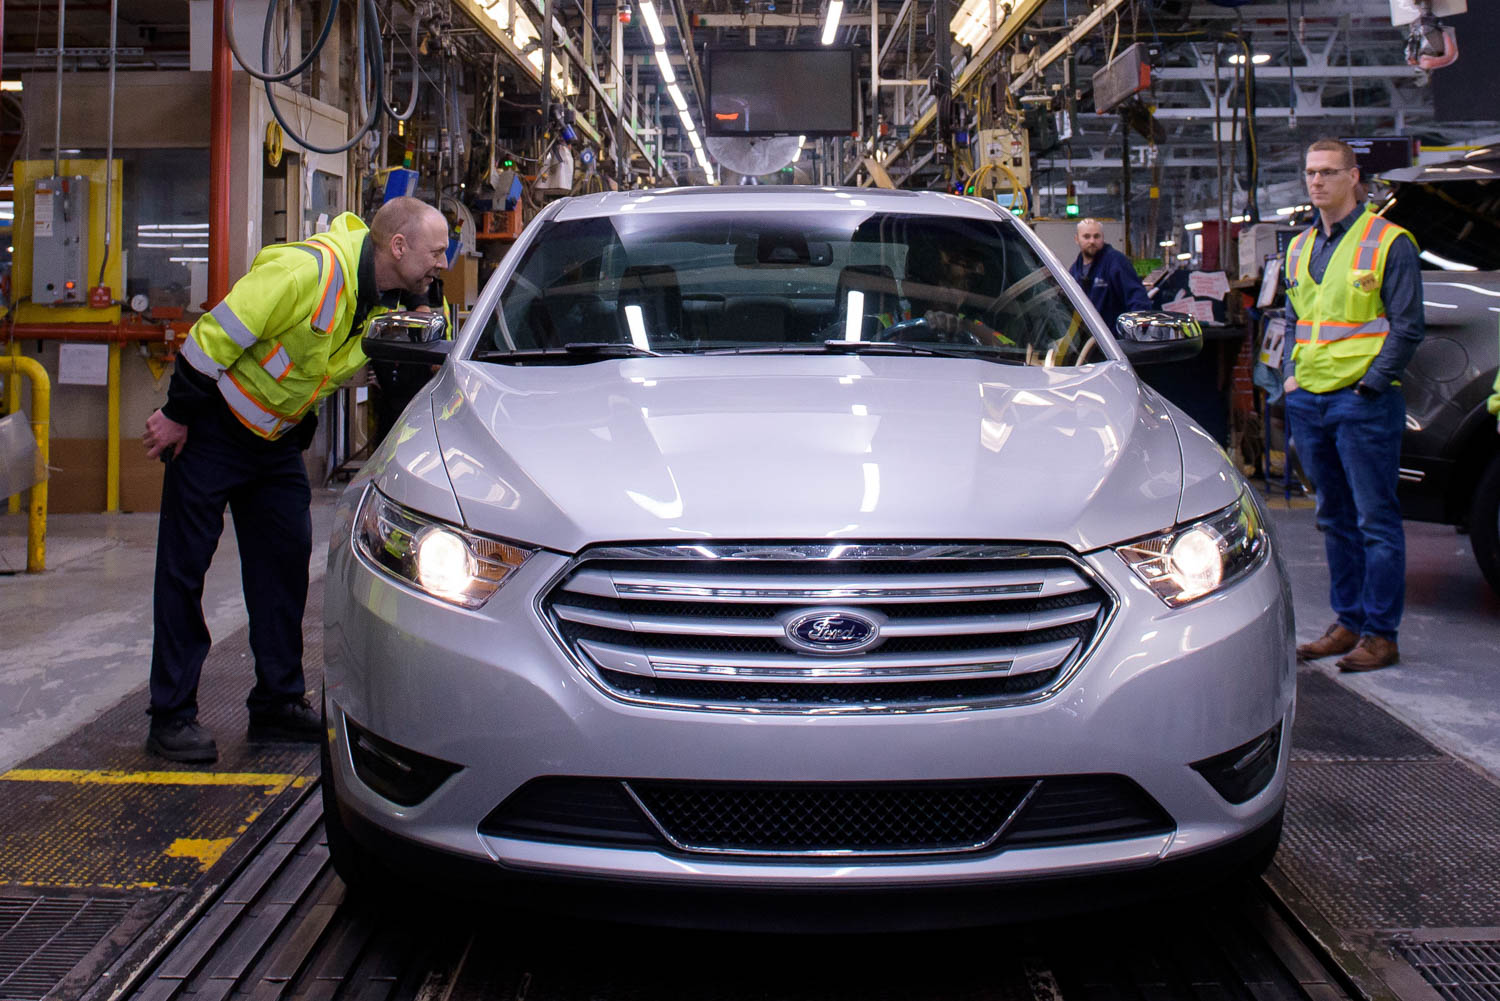 The last Ford Taurus produced